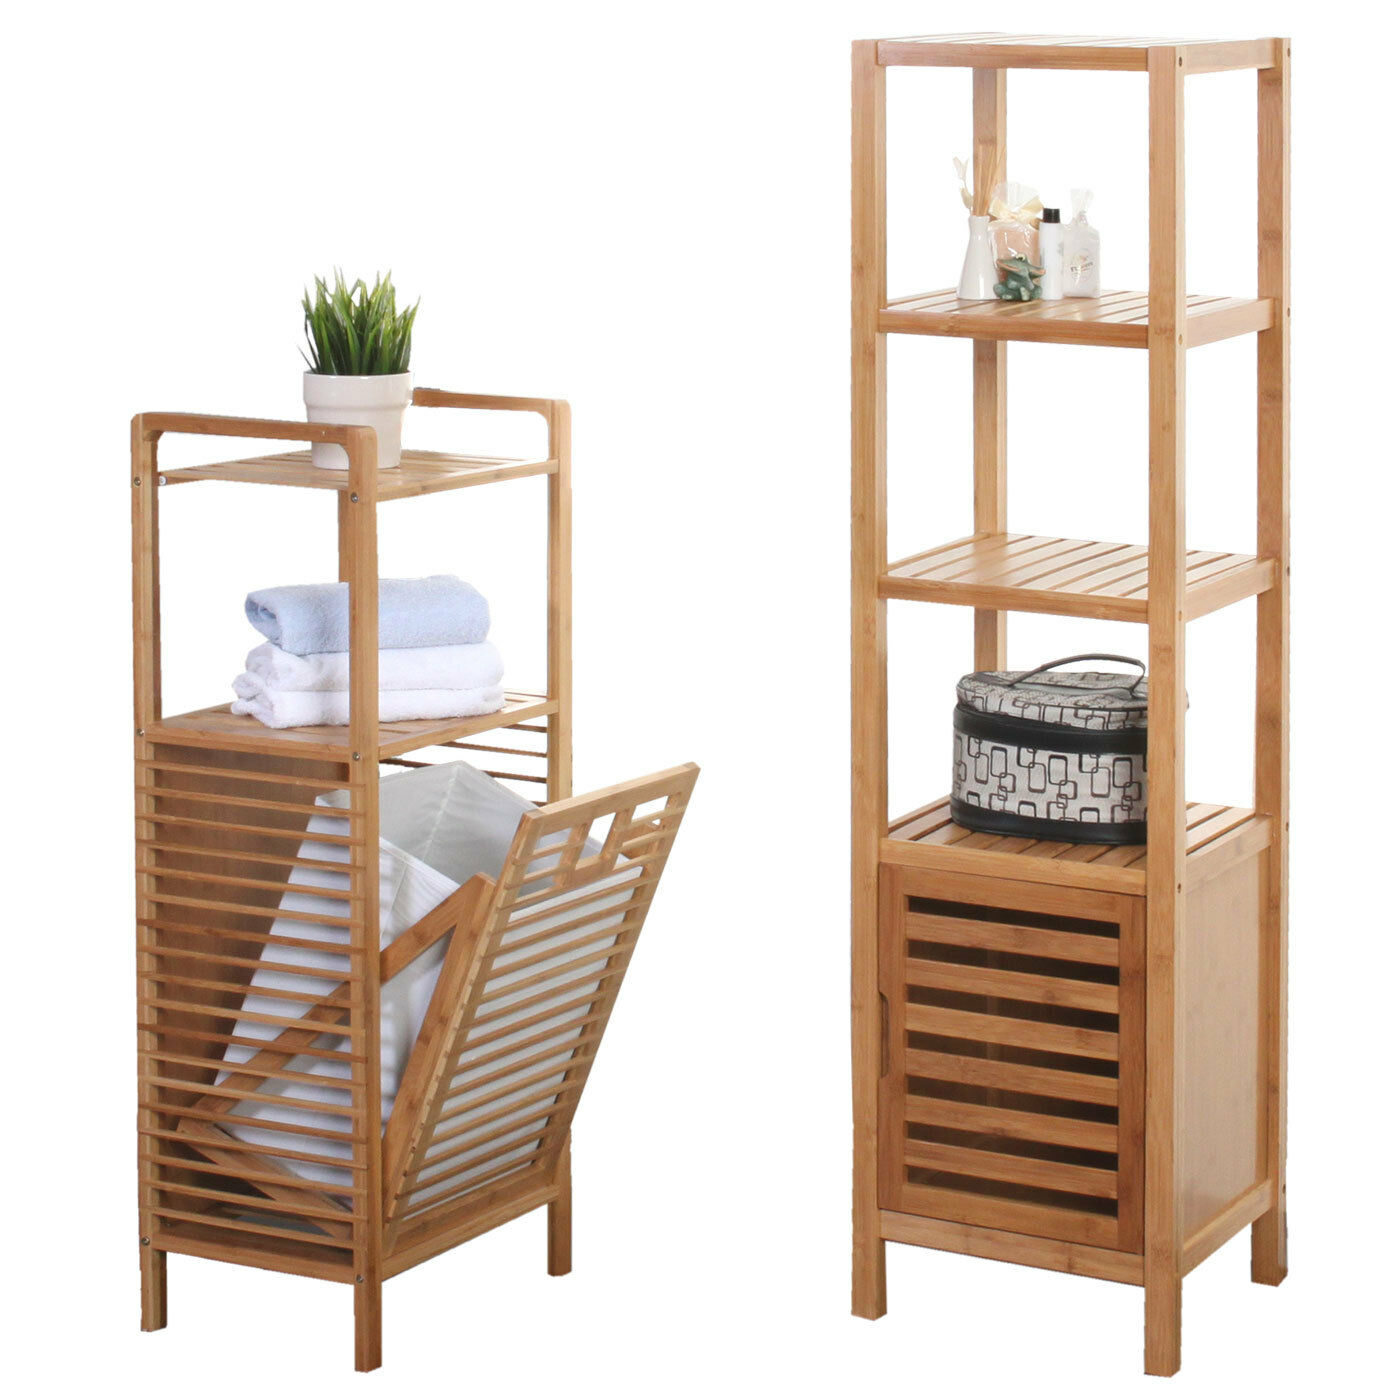 badezimmer set narita badschrank standregal w schekorb bambus eur 155 97 picclick de. Black Bedroom Furniture Sets. Home Design Ideas